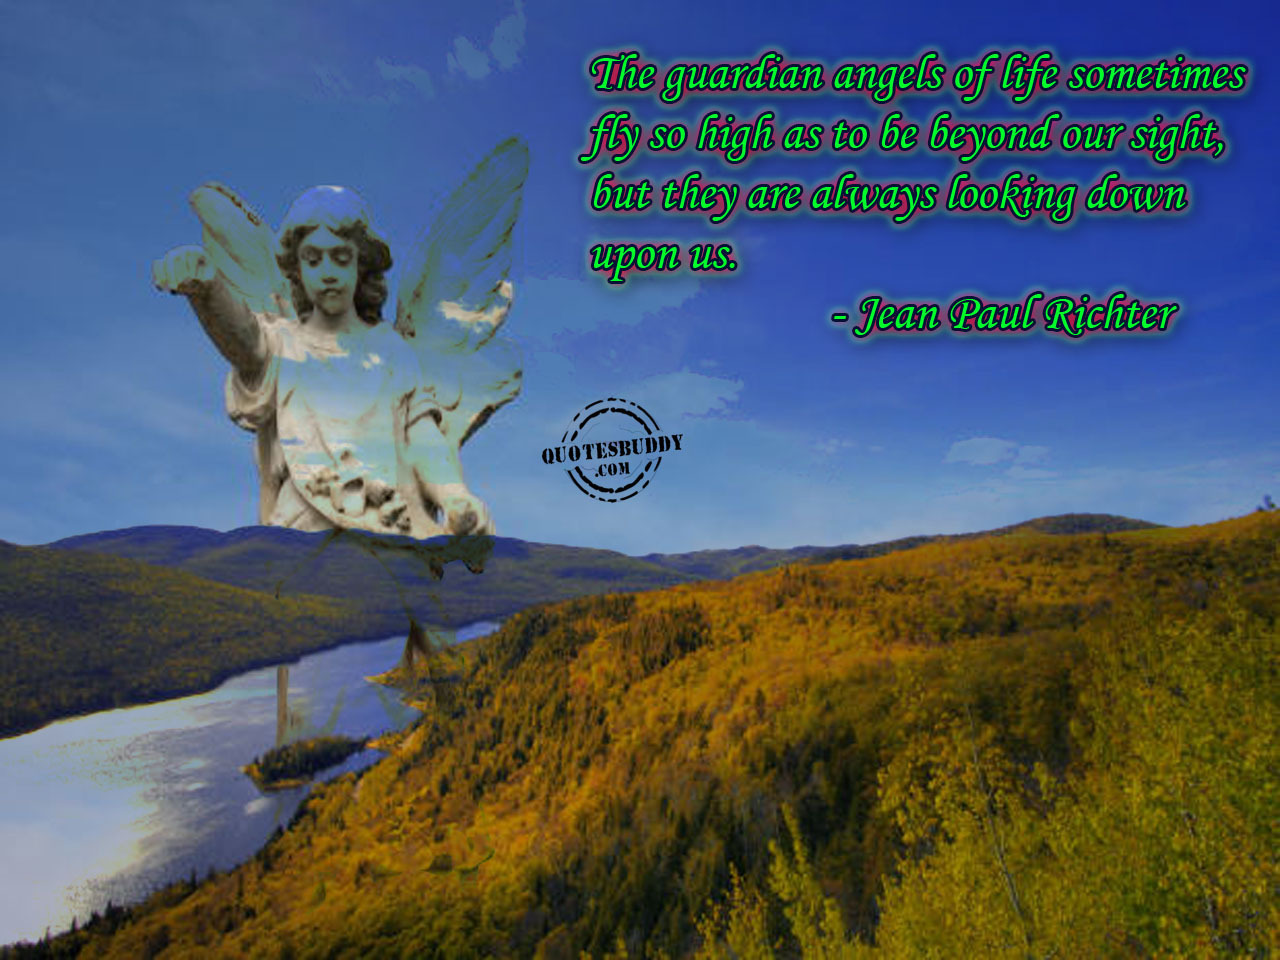 The Guardian Angels Of Life Sometimes Fly So High As To Be Beyond Our Sight, But They Are Always Looking Down Upon Us. - Jean Paul Richter